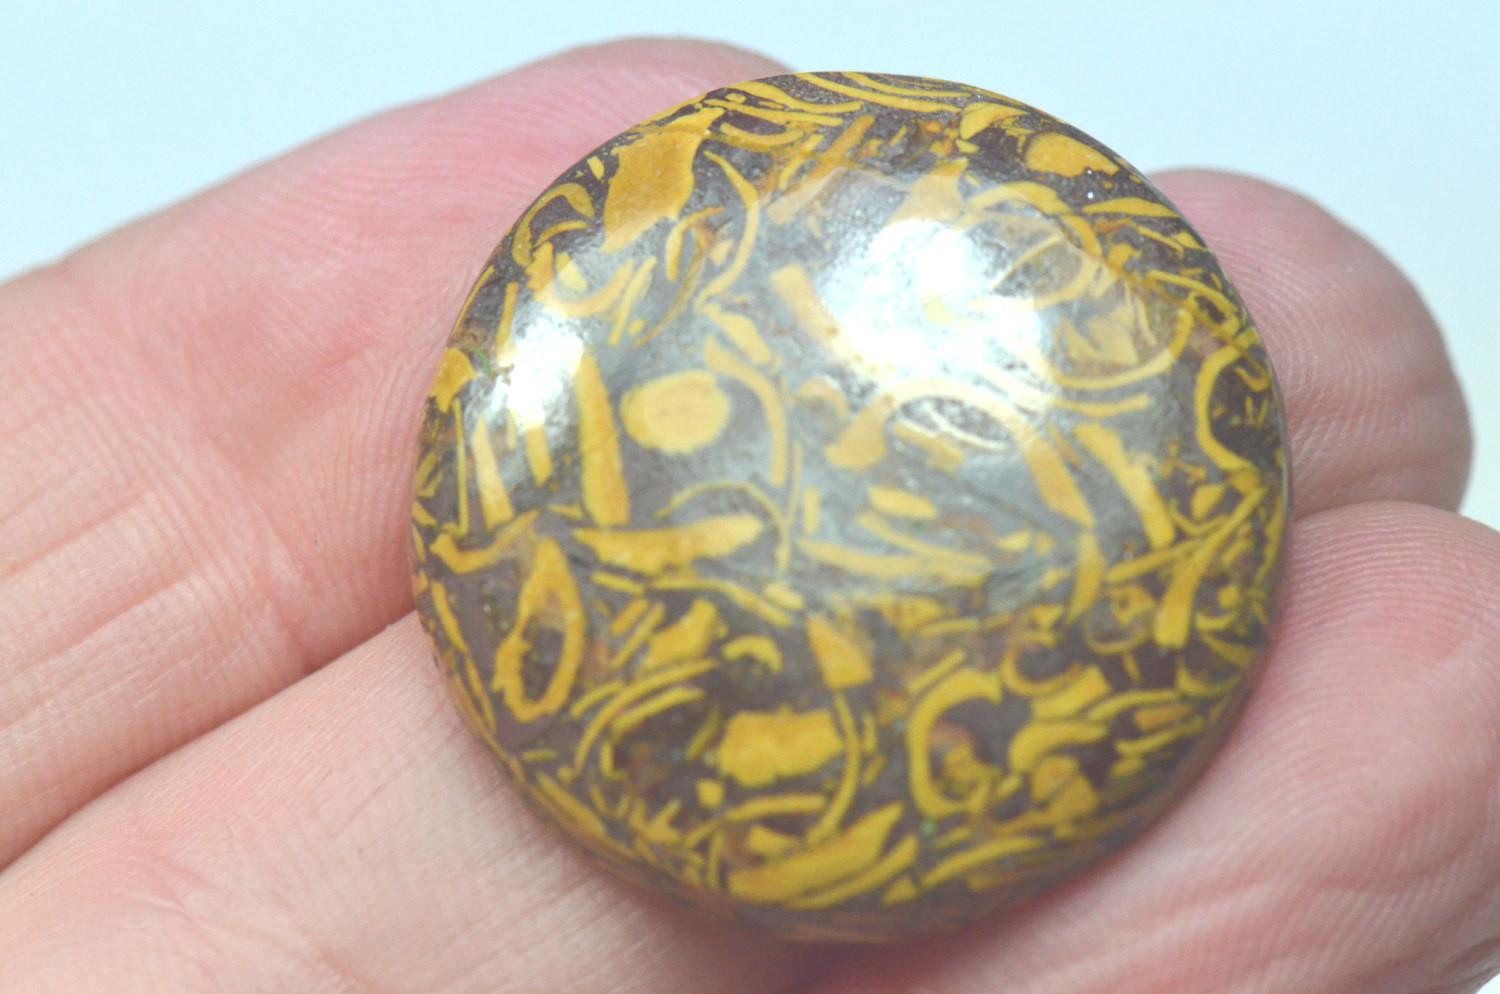 27mm Round Mexican Gold Leaf Agate Cabochon